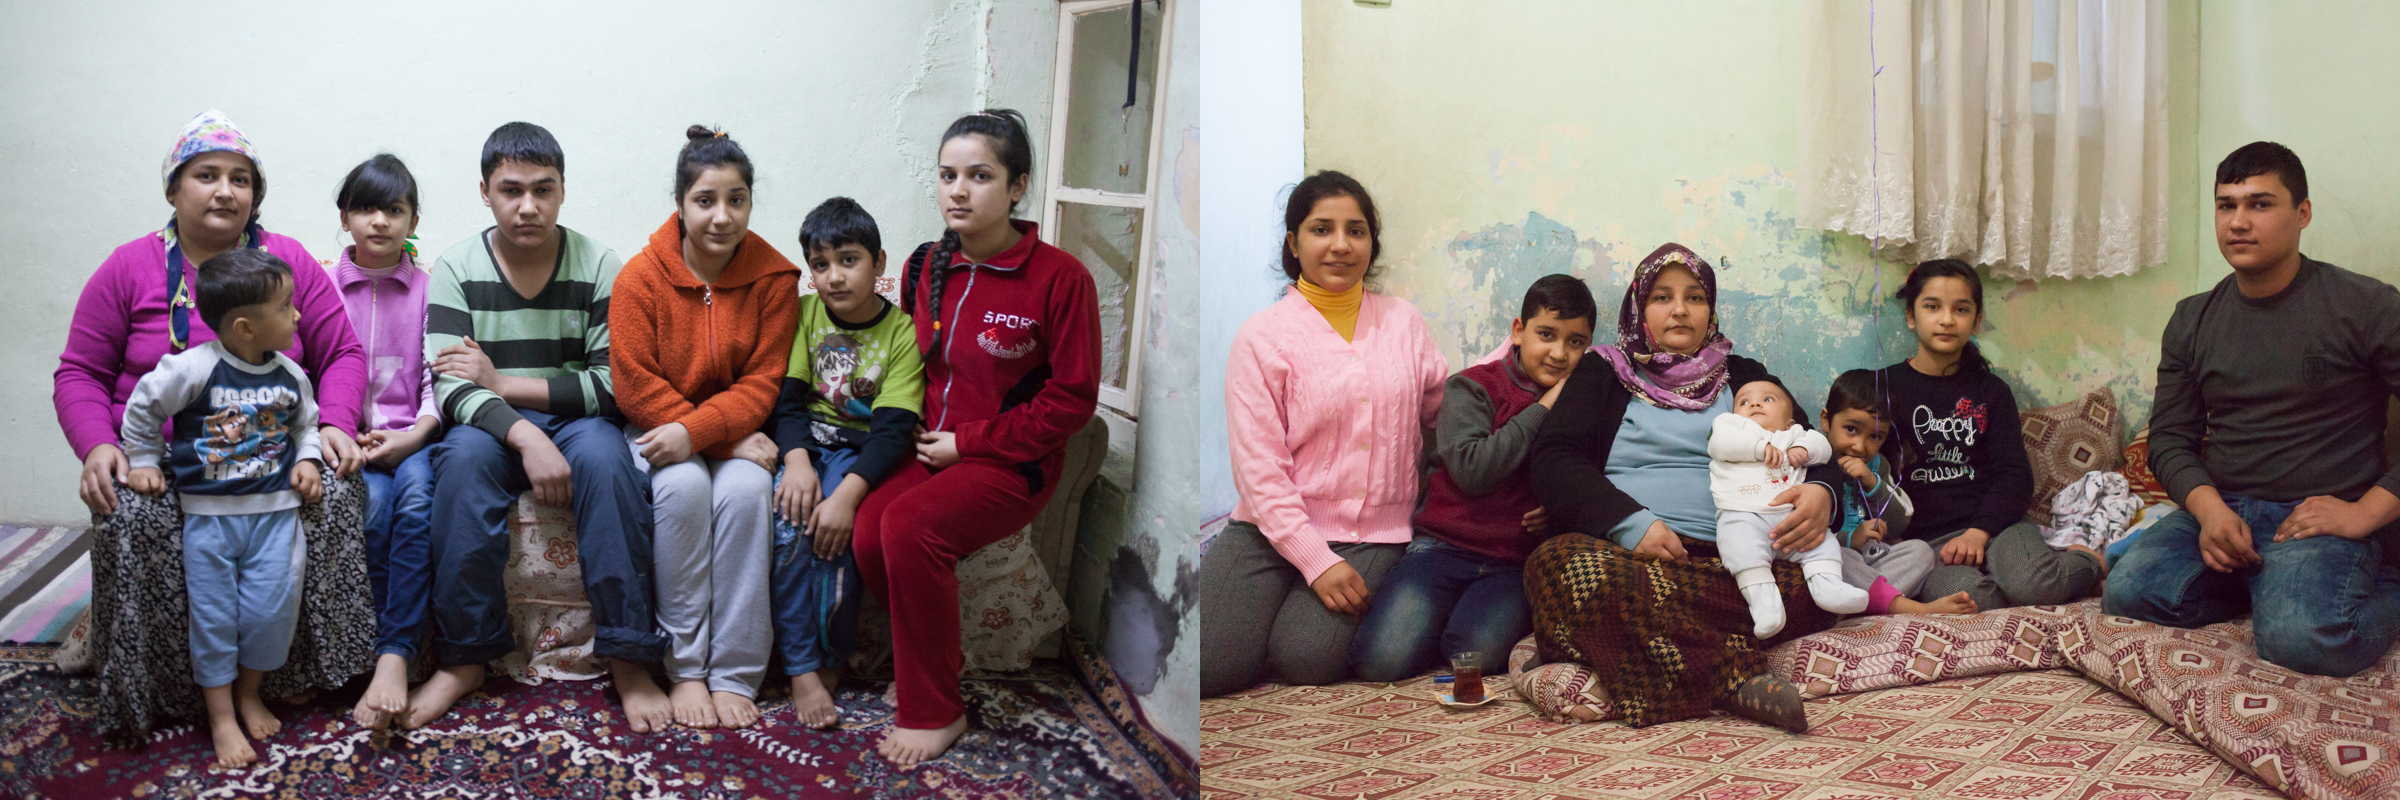 Syrian Refugee Family in Gaziantep Turkey Emily Troutman Aidworks